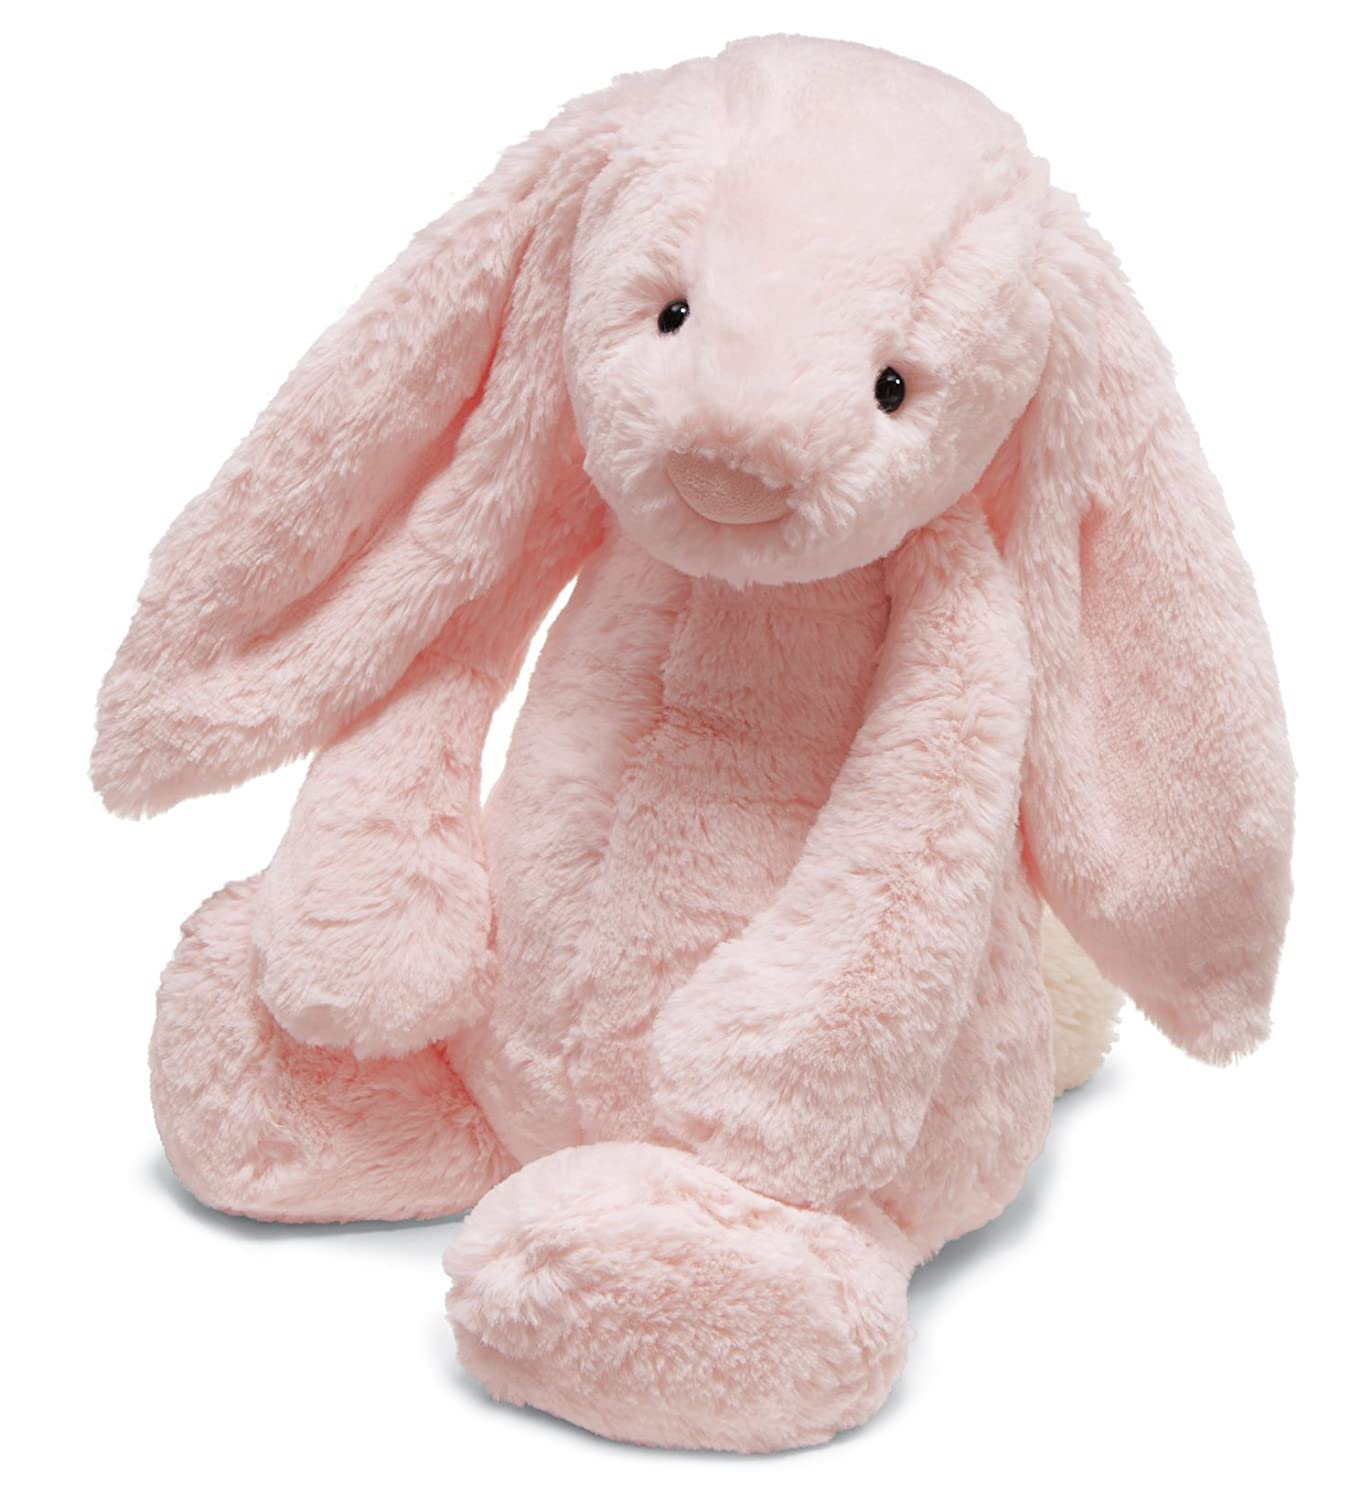 Jellycat Bashful Pink Bunny Baby Chime Rattle, 12 inches SBB444P